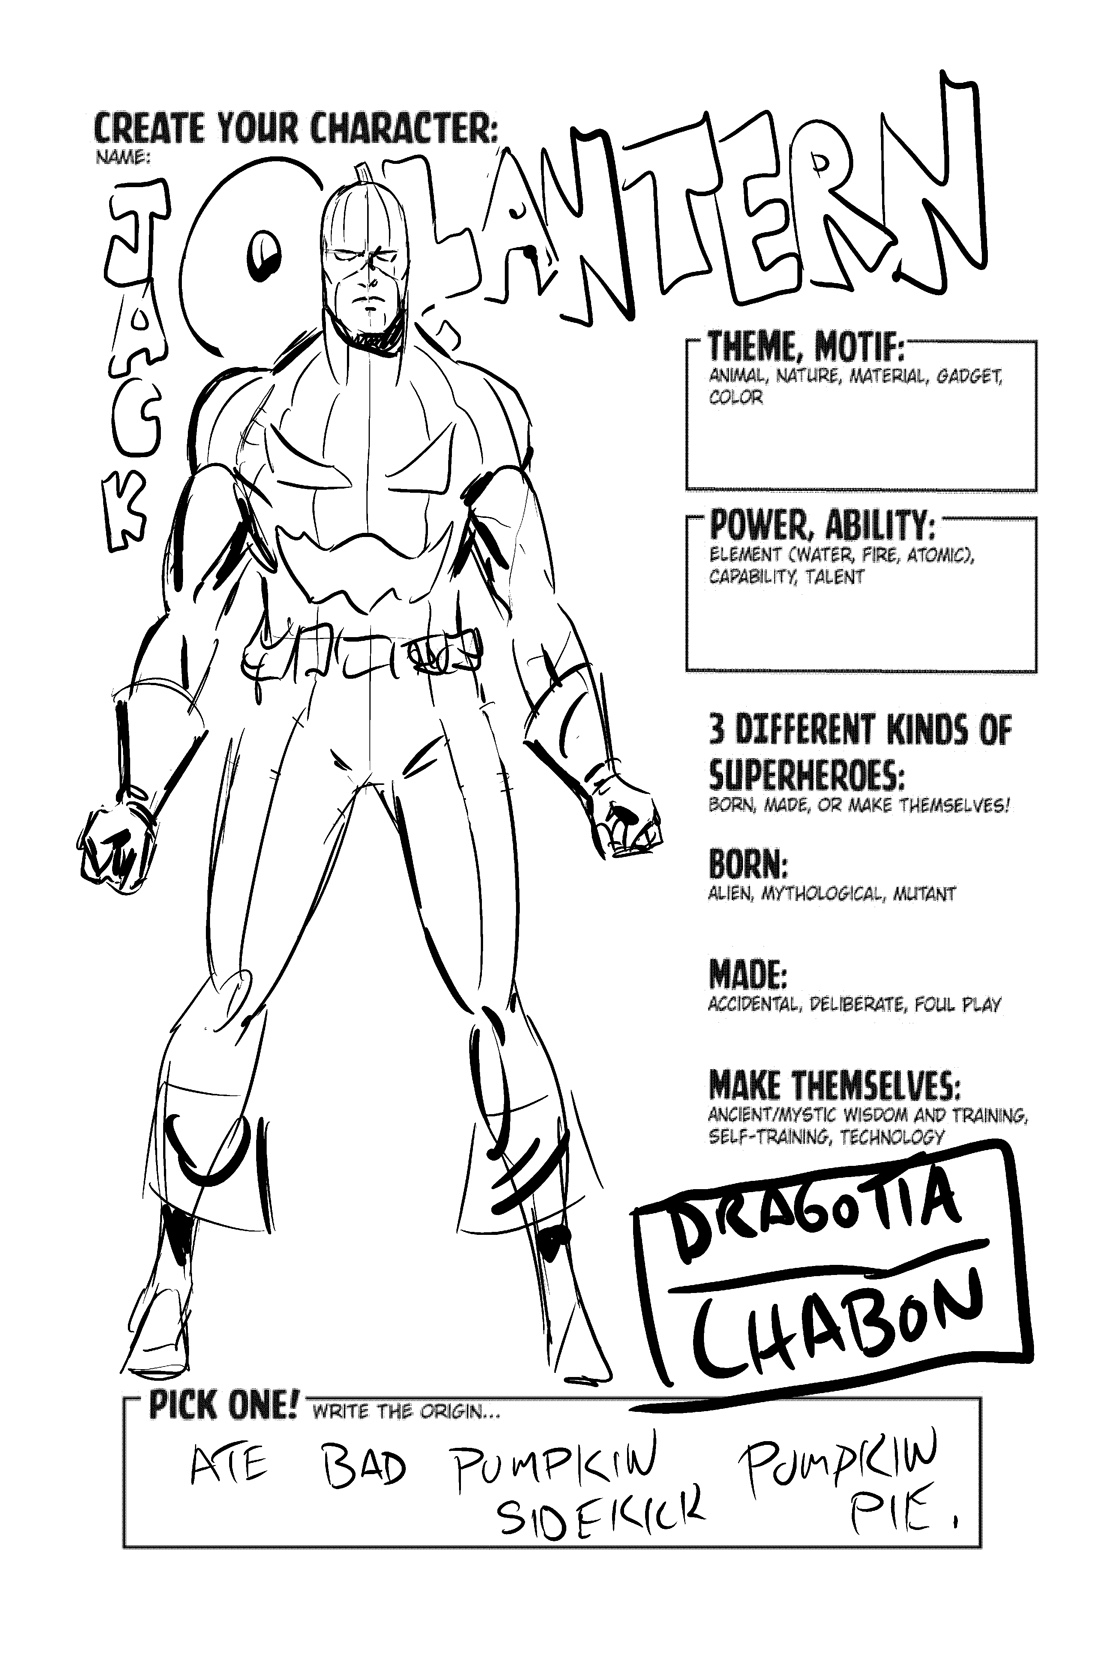 Make Your Own Superhero Coloring Page Coloring Pages